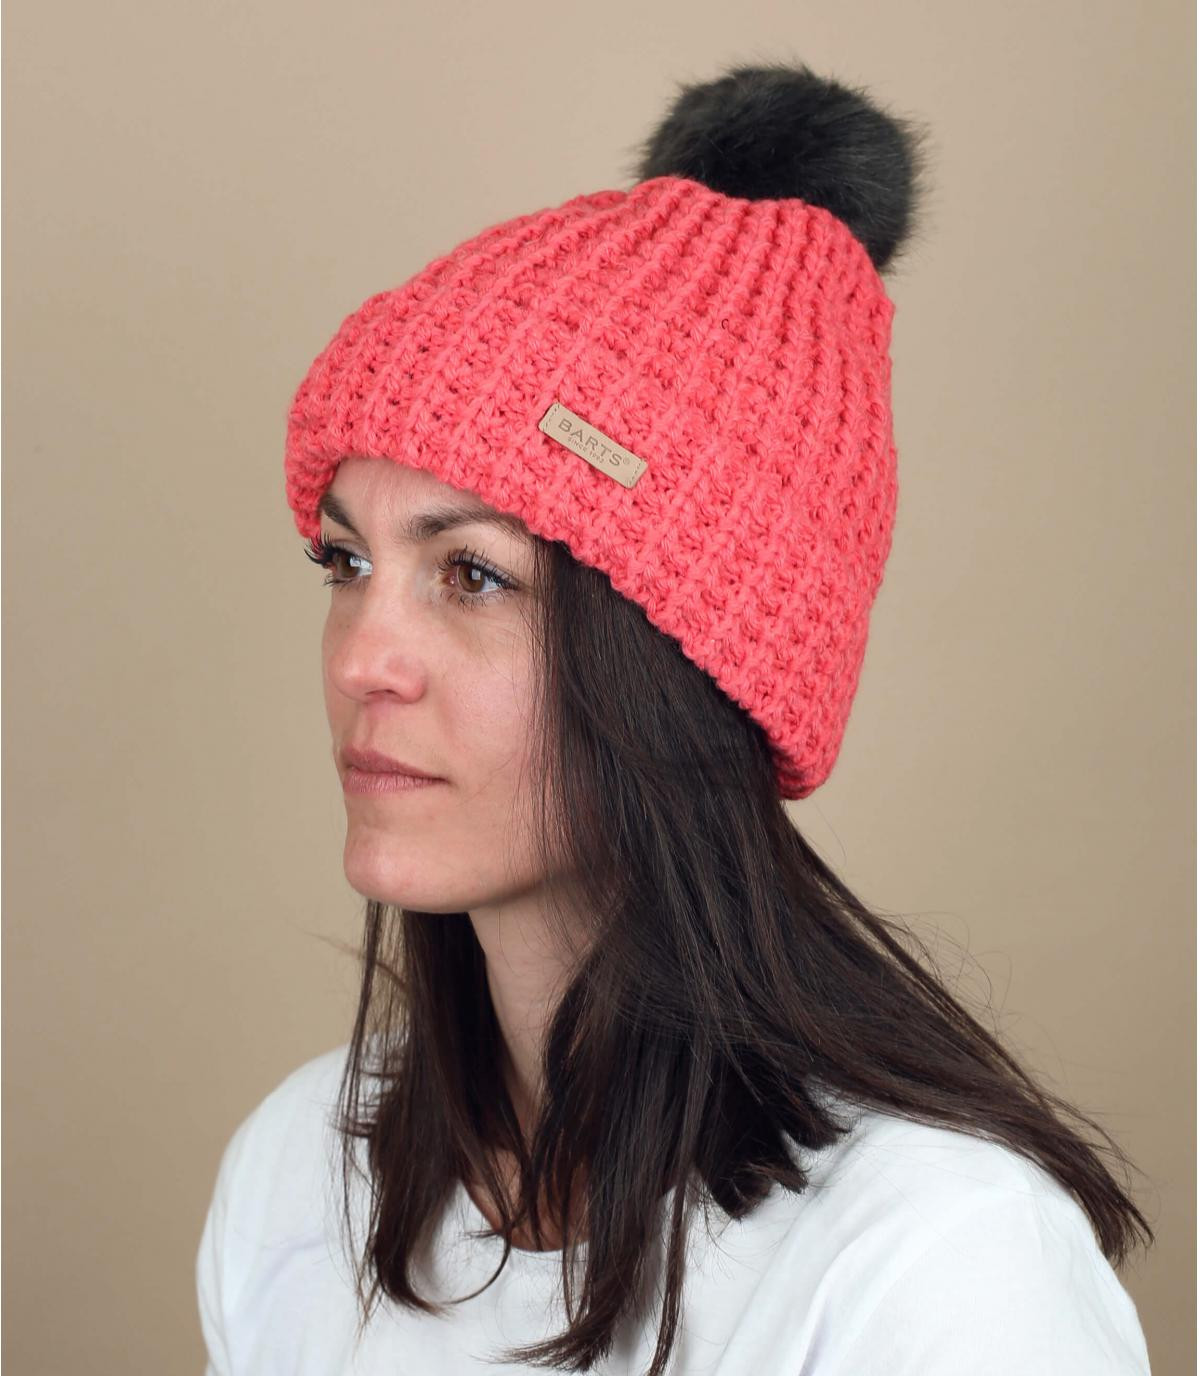 Pink beanie for women